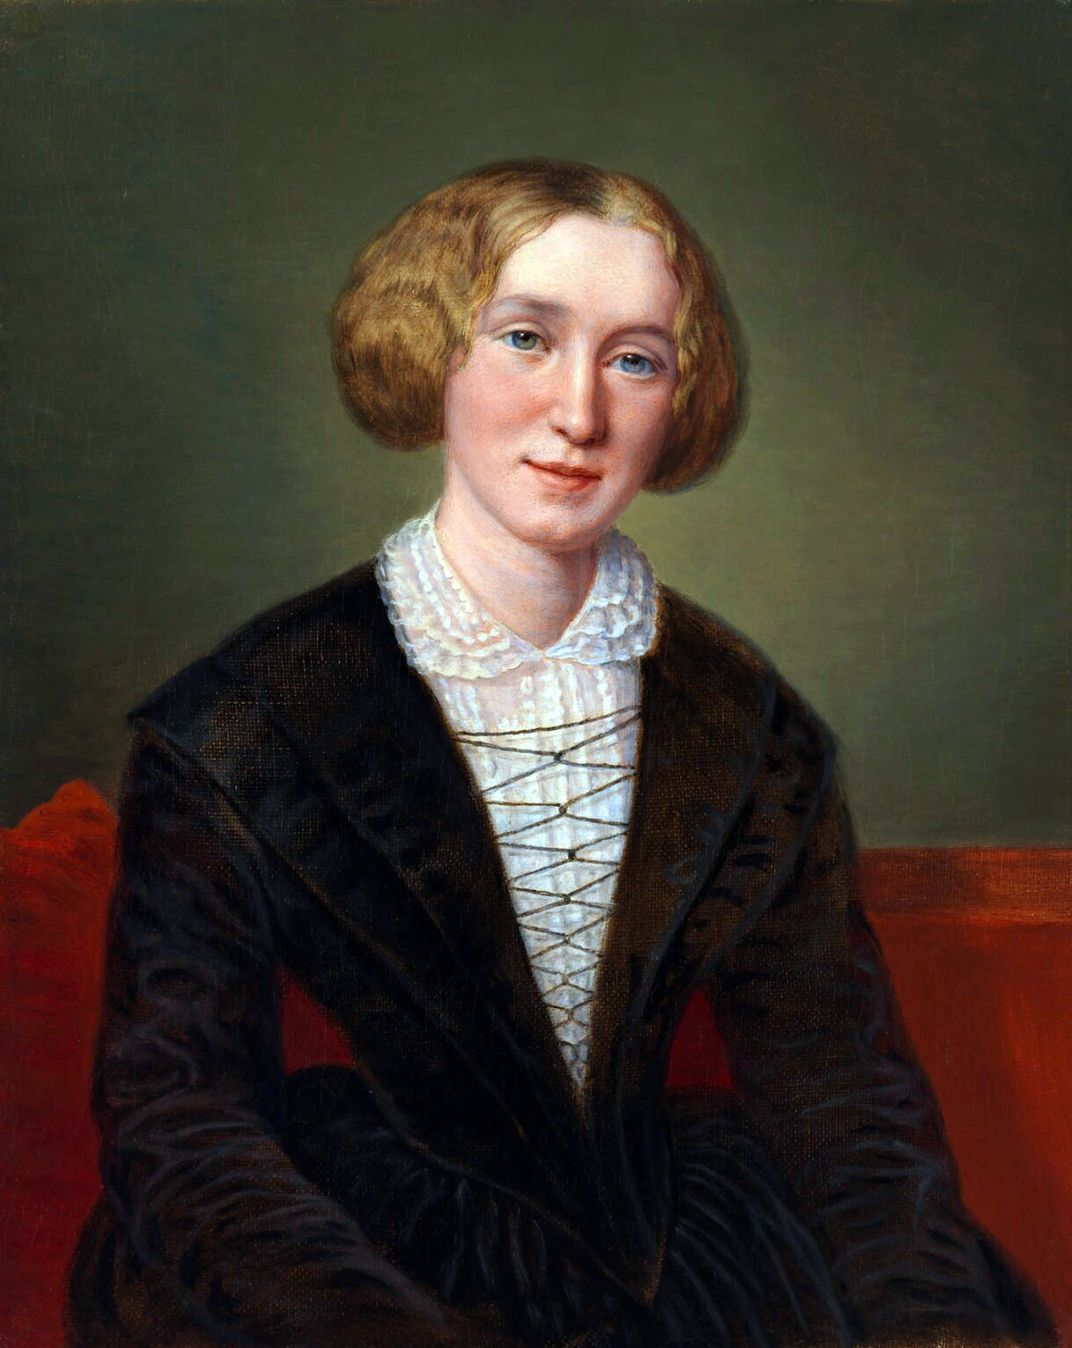 A painted portrait of Eliot, who is white, faces viewer, wearing a black dress with a white lace collar and sitting in front of a red and brown backdrop